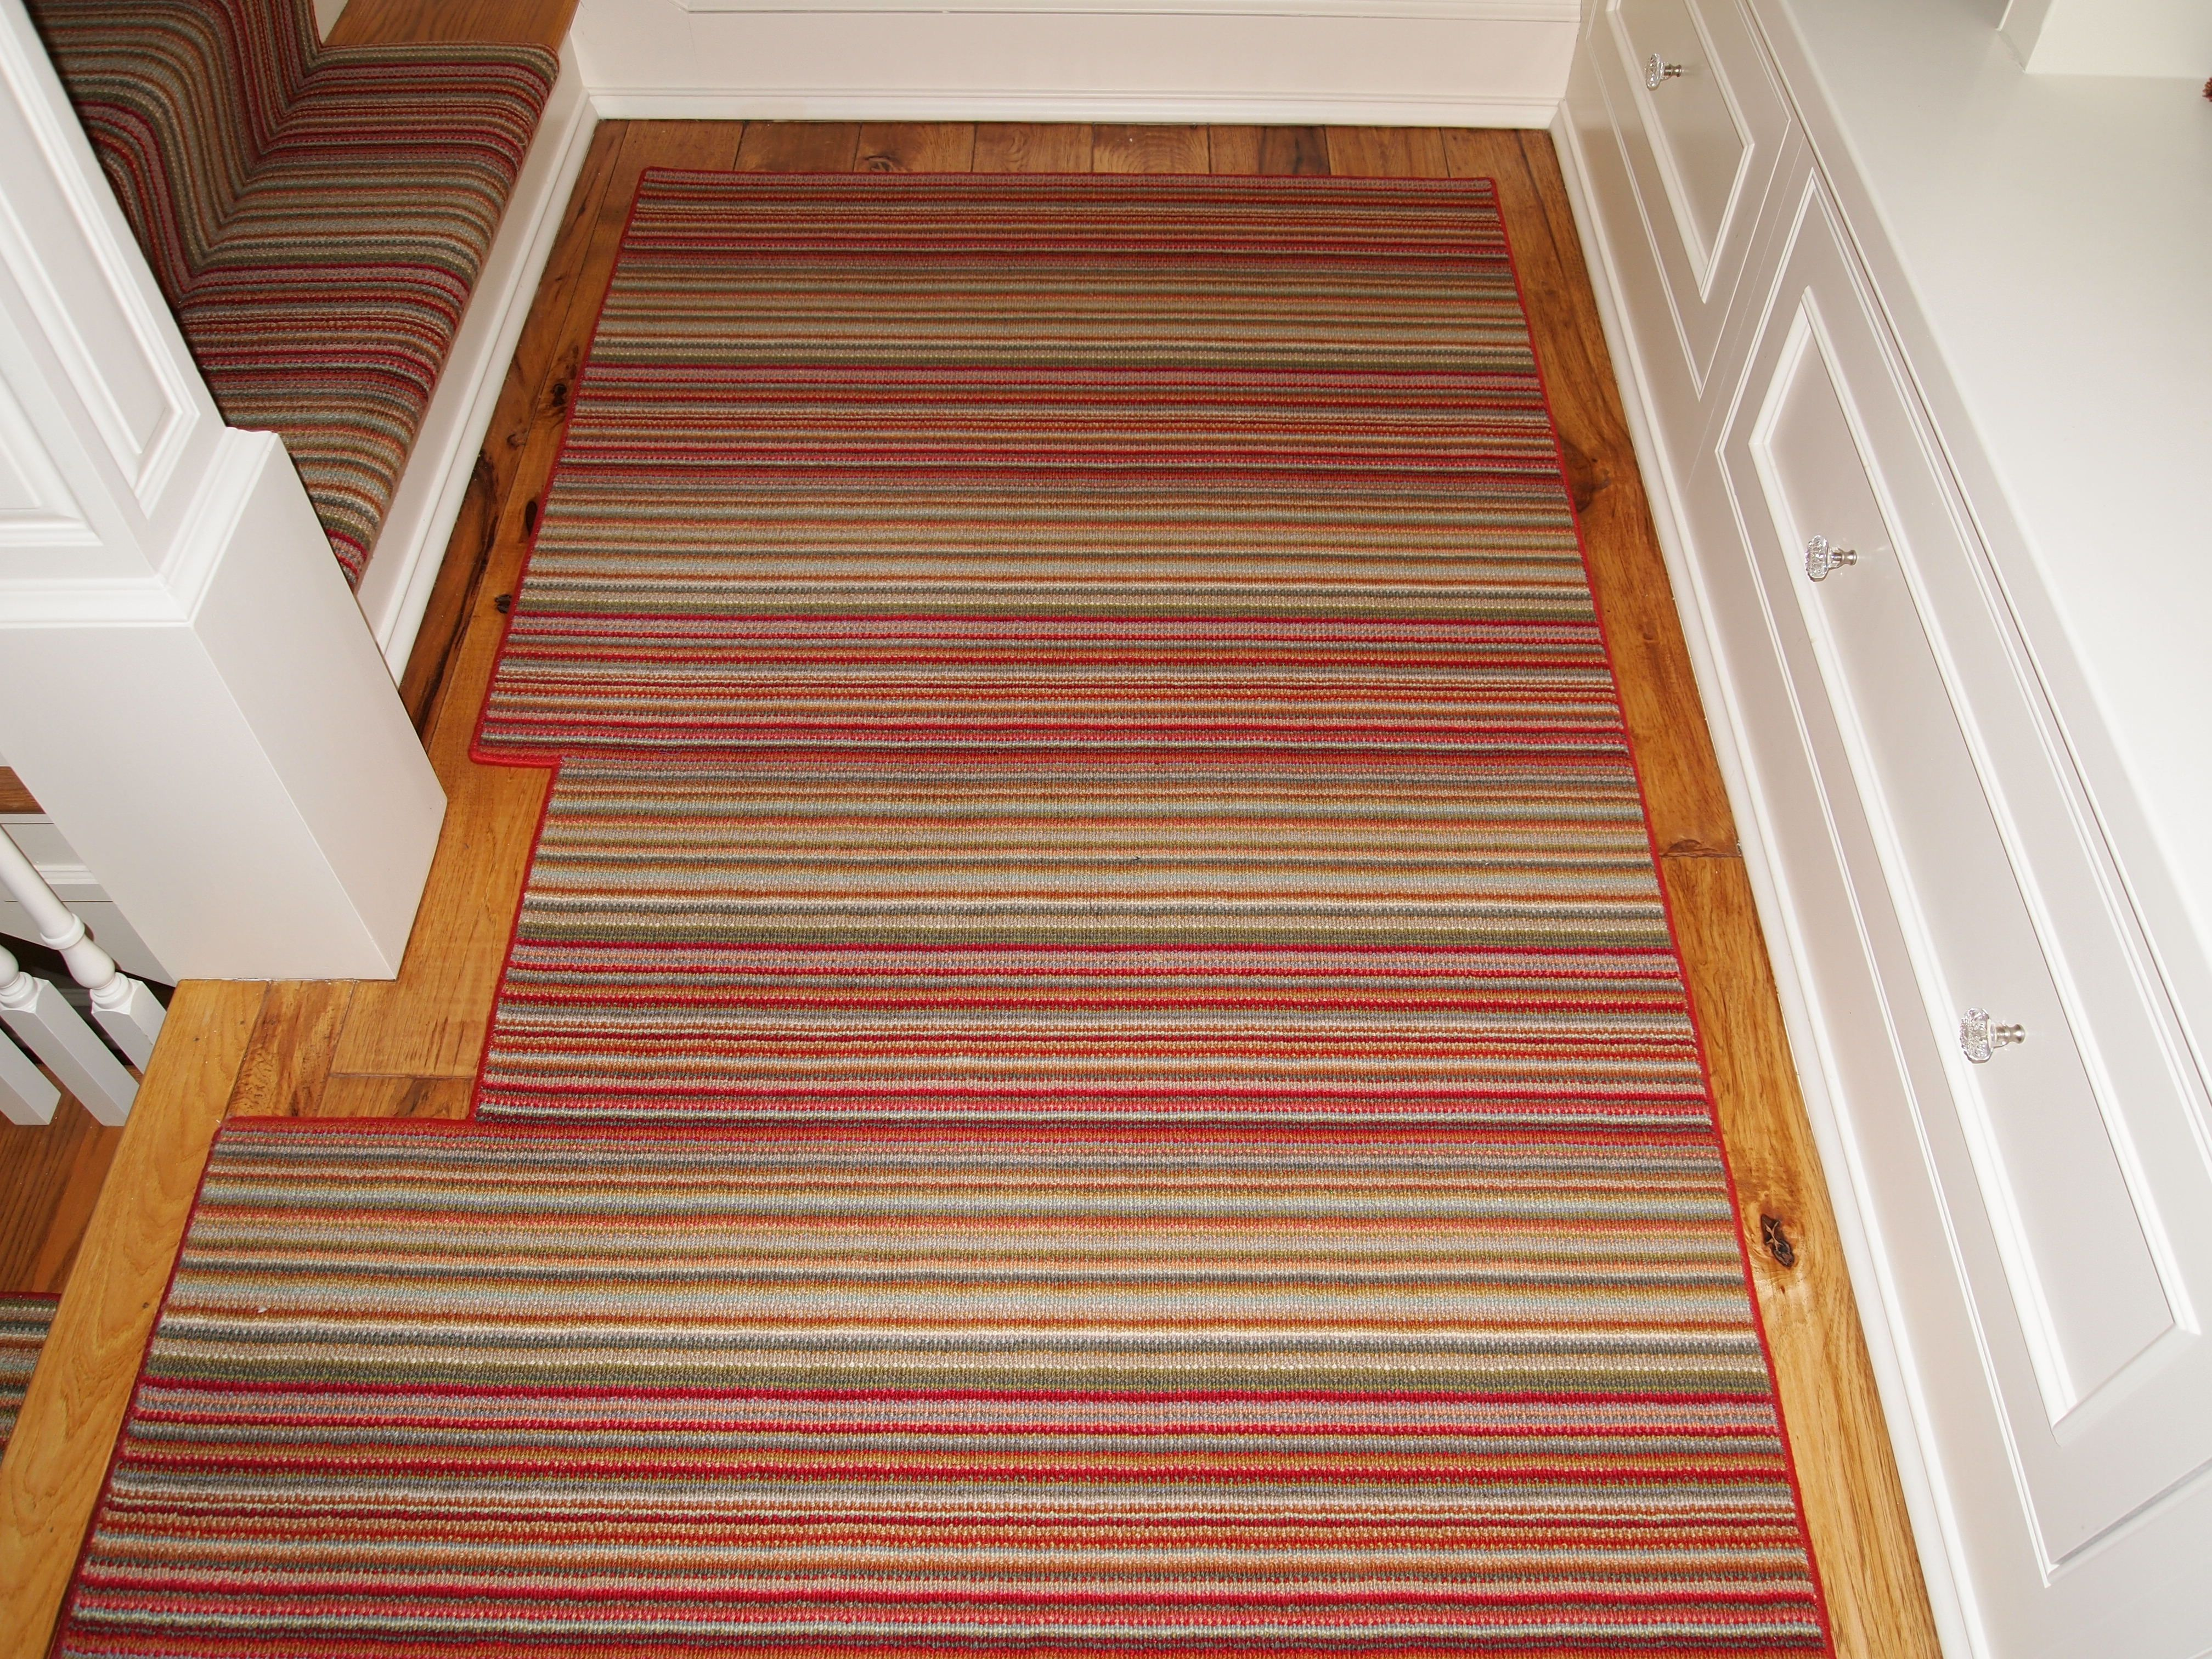 Have An Odd Shaped Landing What About A Custom Rug To Mimic The Shape By Russell Martin Carpets Buying Carpet Carpet Runner Long Carpet Runners